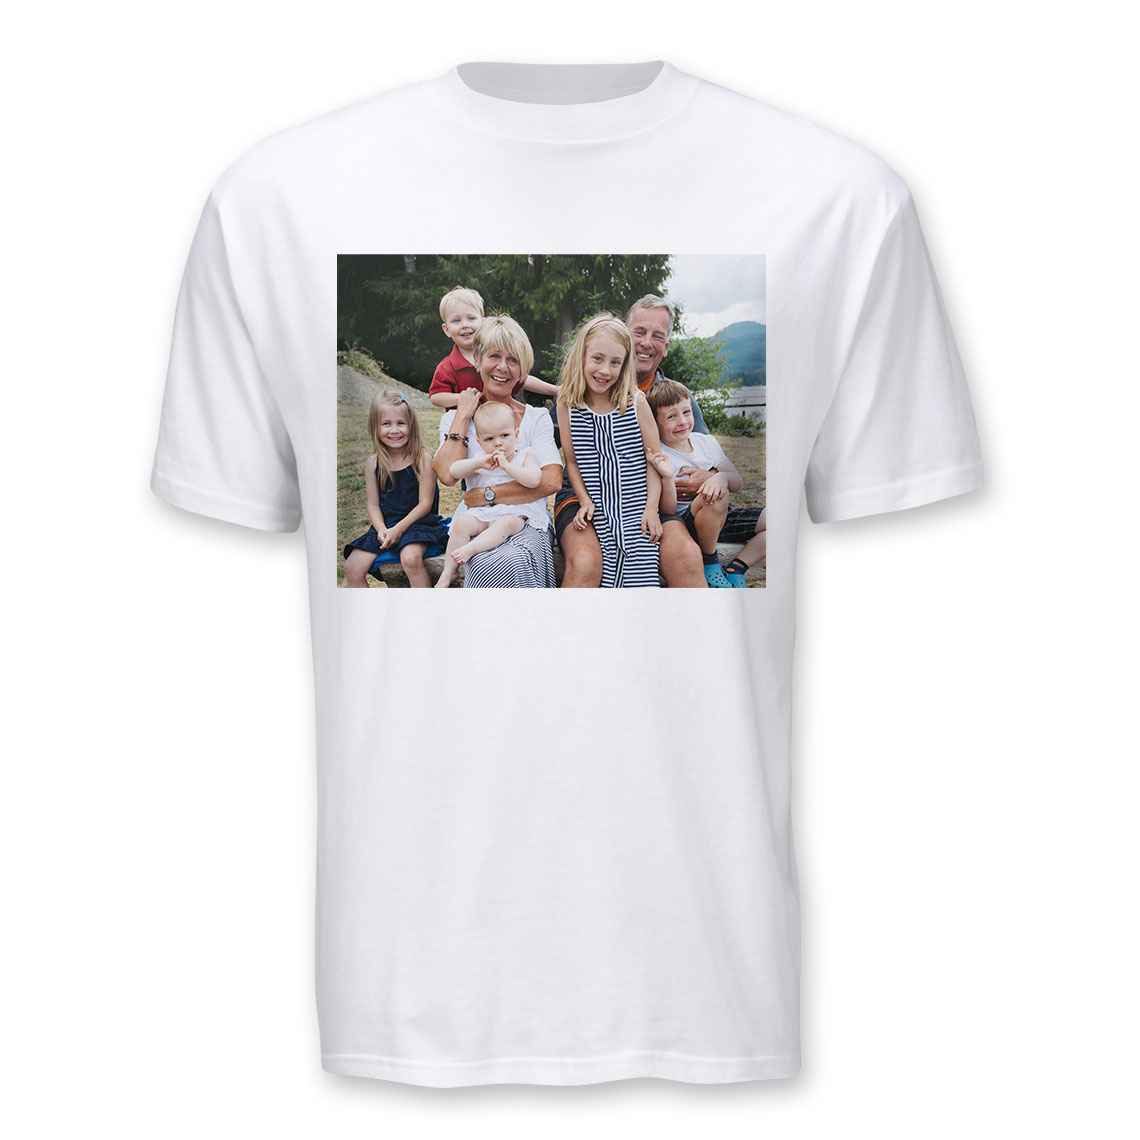 Trending t shirt design - Photographs T-shirt